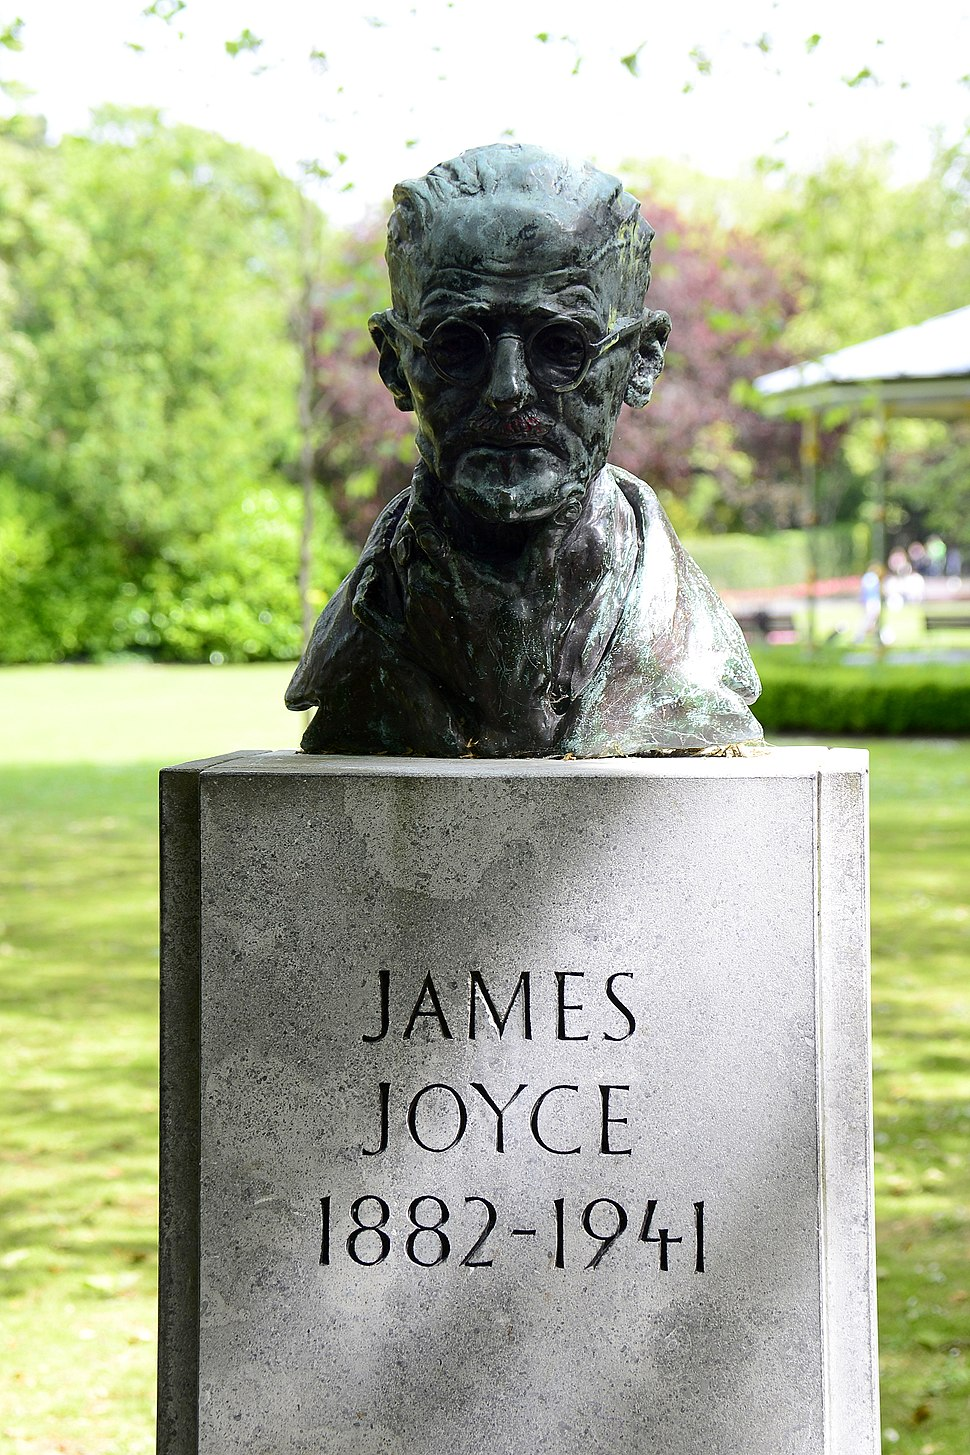 James Joyce's bust at St Stephen's Green in Dublin, Ireland.